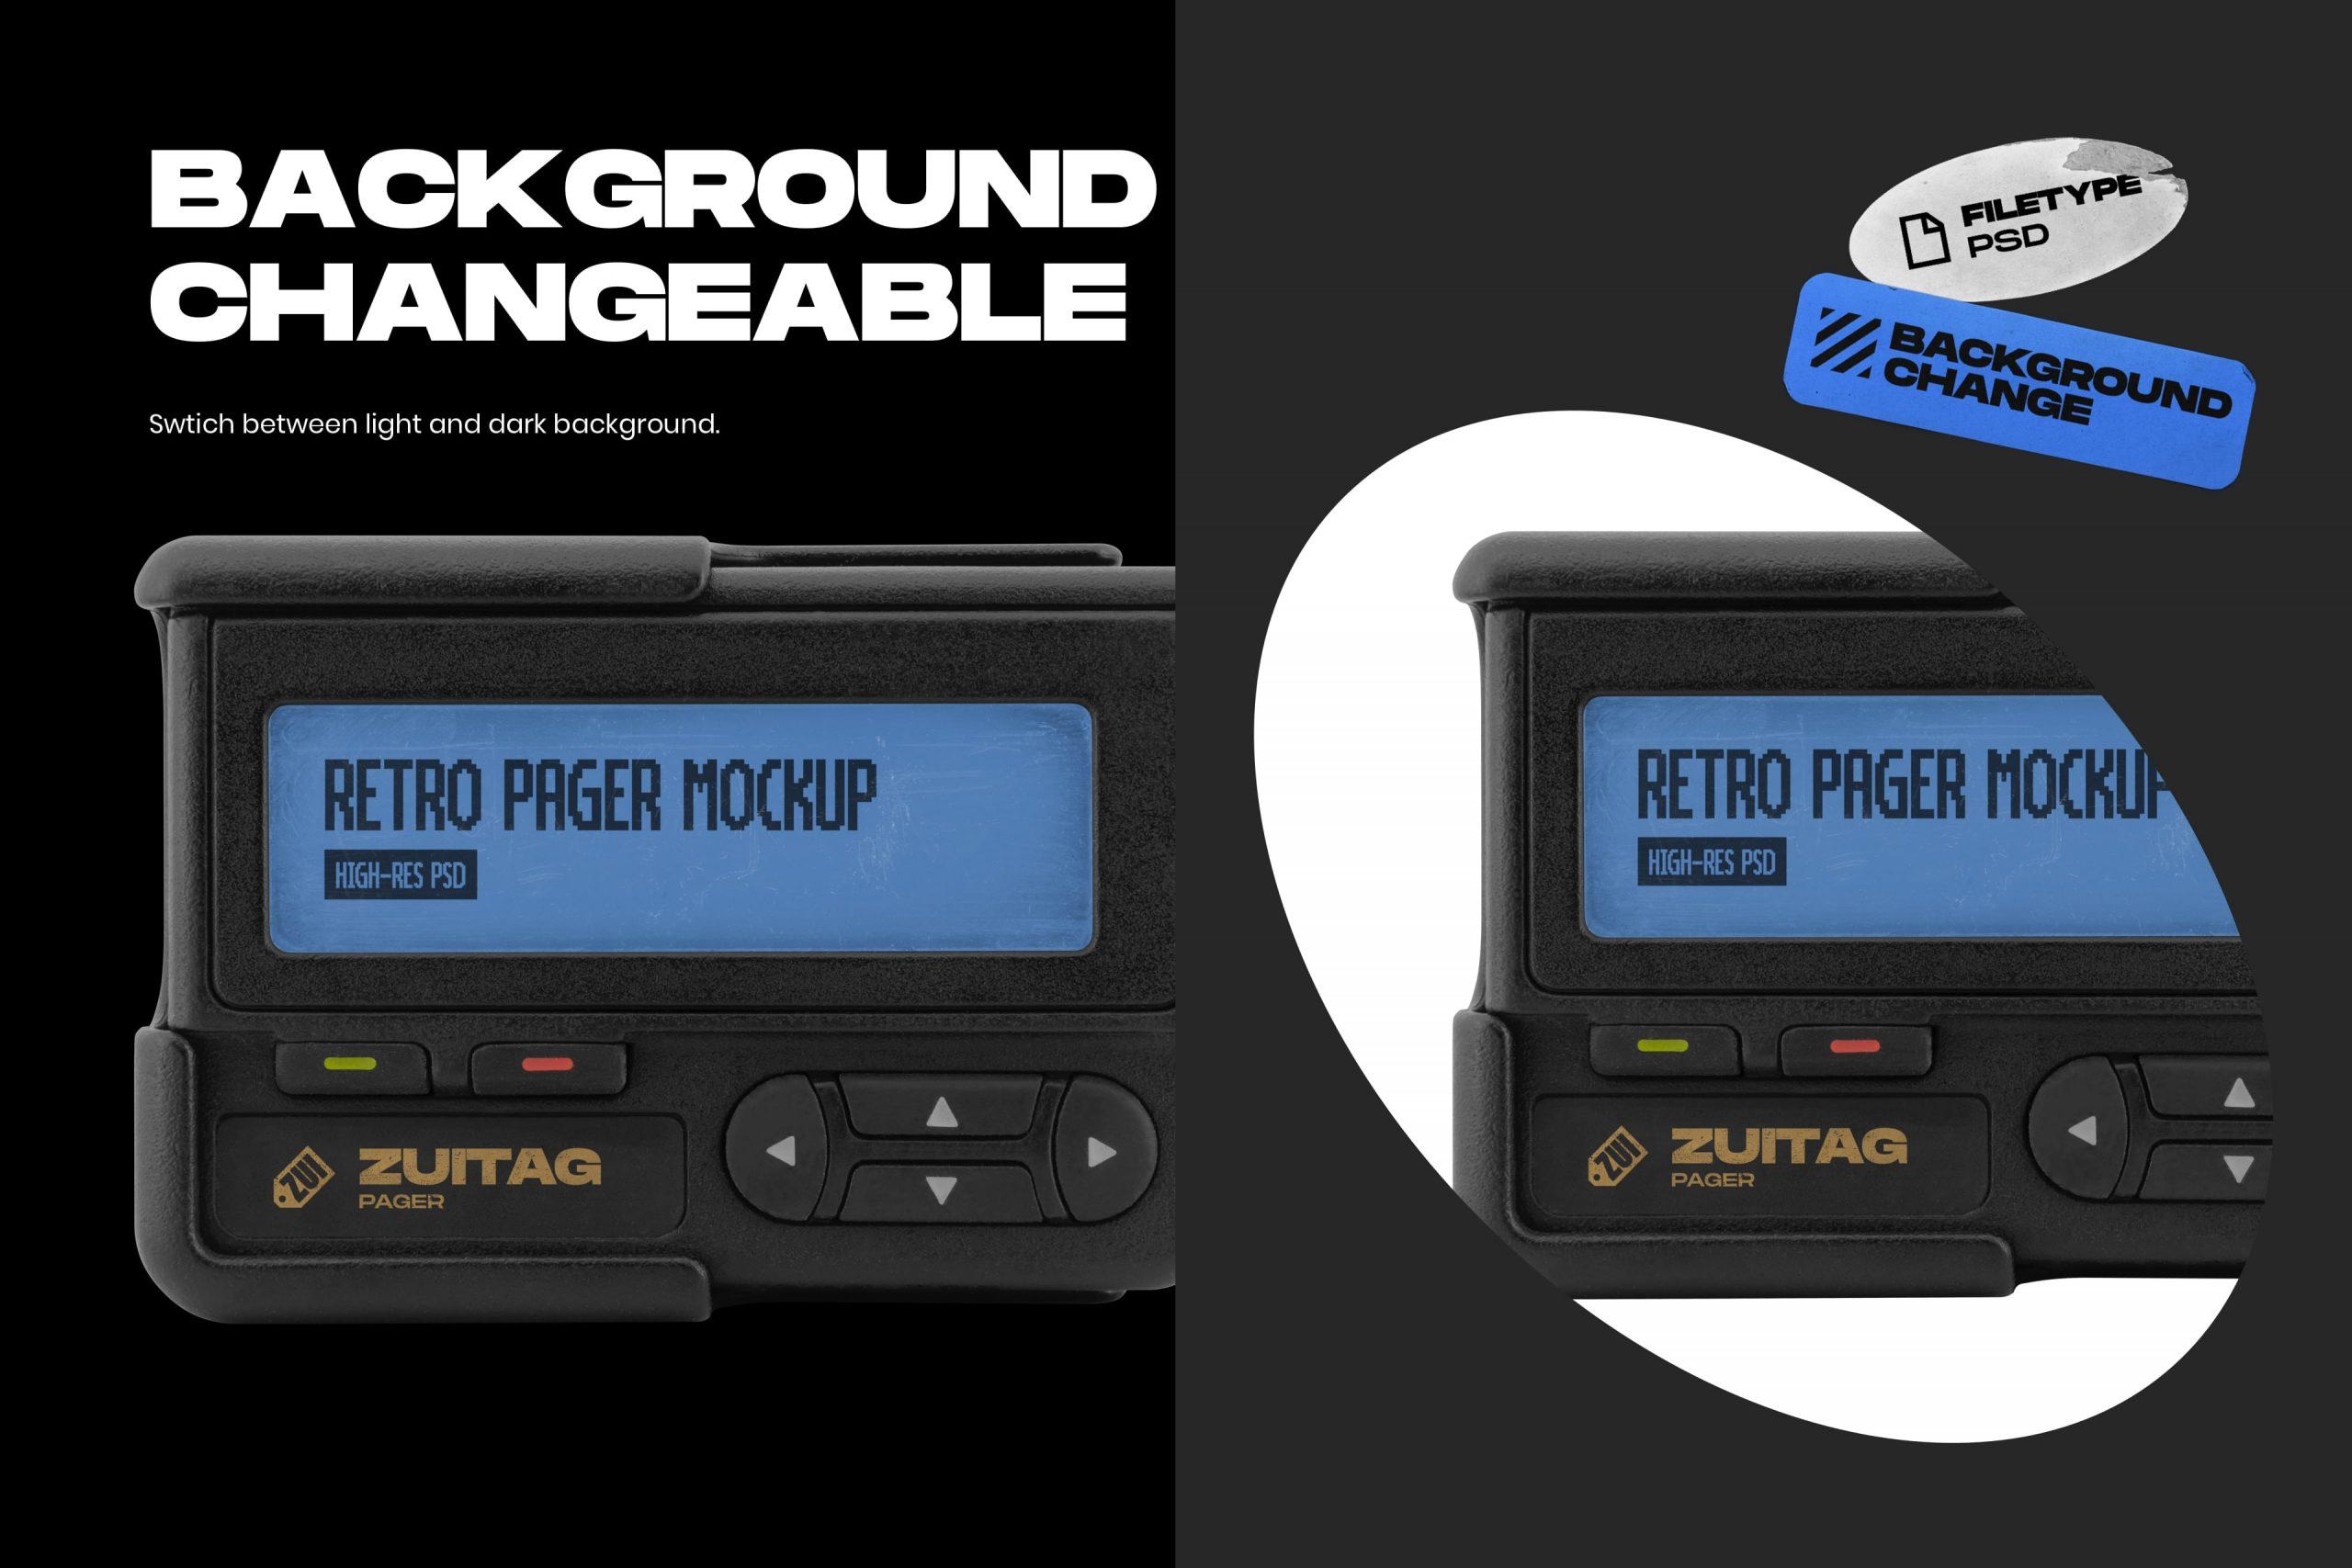 Retro Pager Mockup - Background Changeable